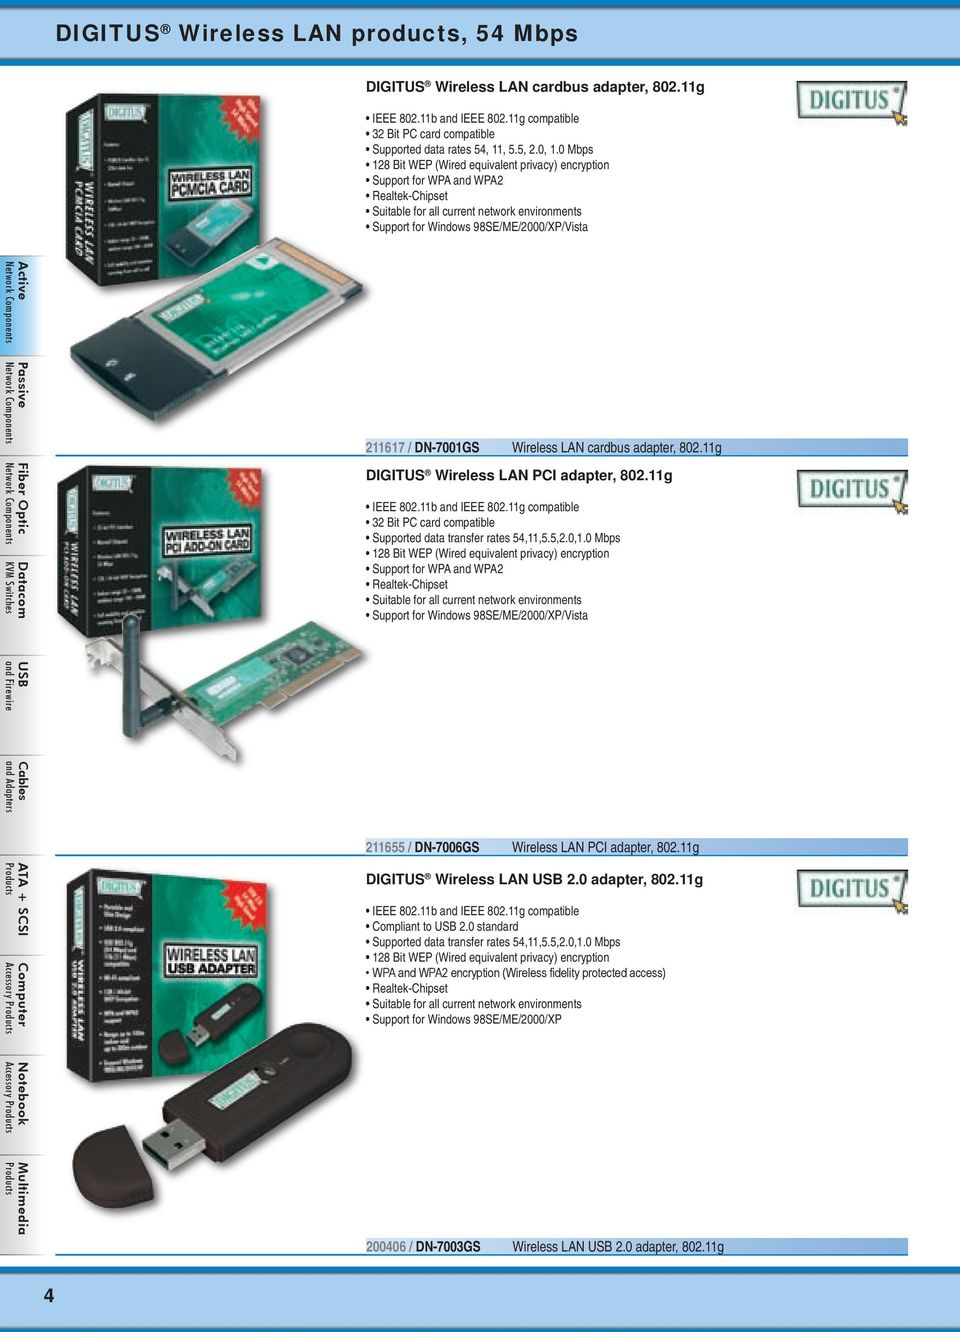 DN-7001GS Wireless LAN cardbus adapter, 802.11g DIGITUS Wireless LAN PCI adapter, 802.11g IEEE 802.11b and IEEE 802.11g compatible 32 Bit PC card compatible Supported data transfer rates 54,11,5.5,2.